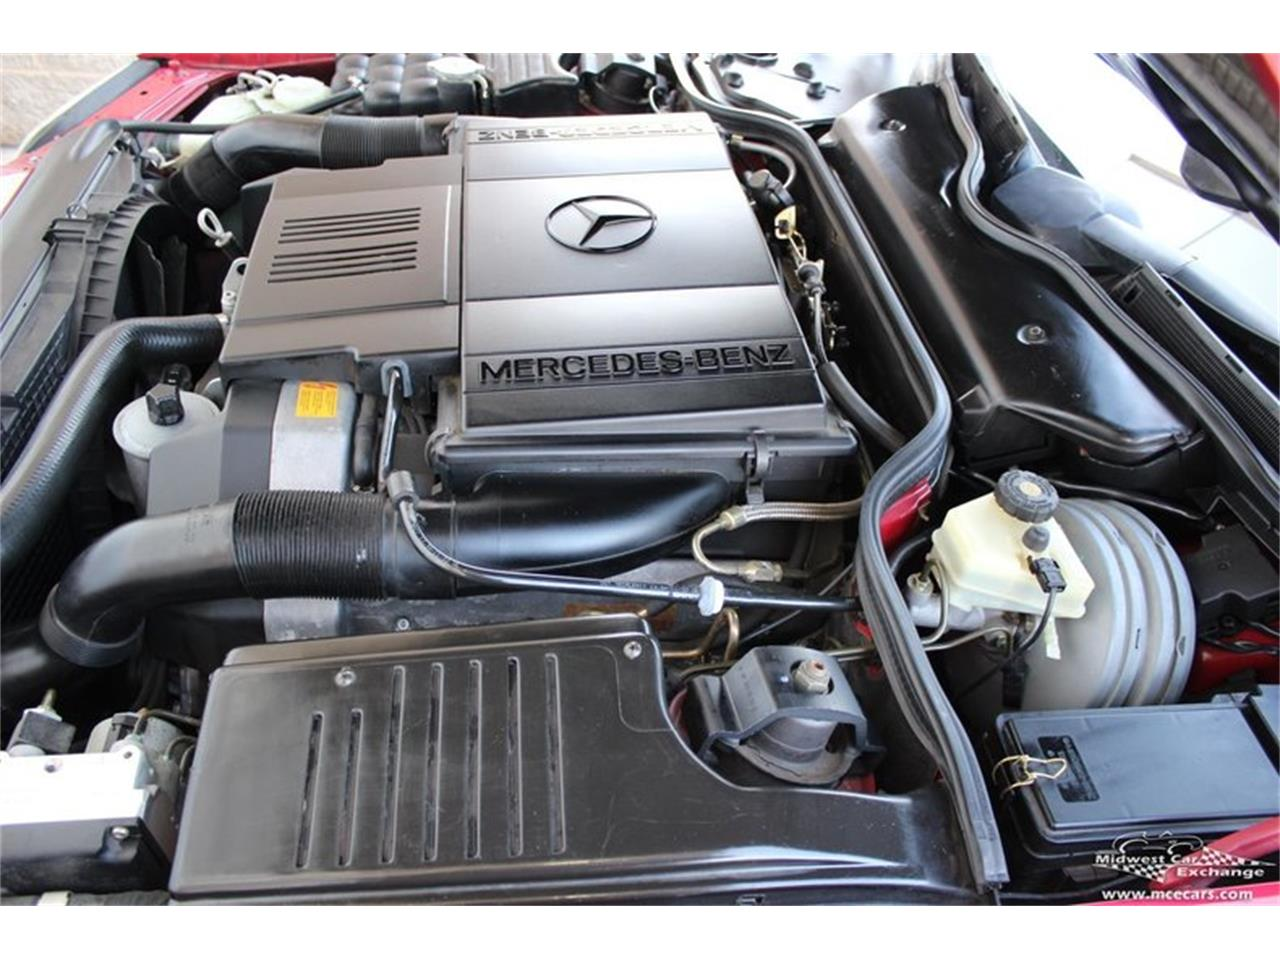 Large Picture of 1995 Mercedes-Benz SL500 located in Illinois - $14,900.00 - M42A